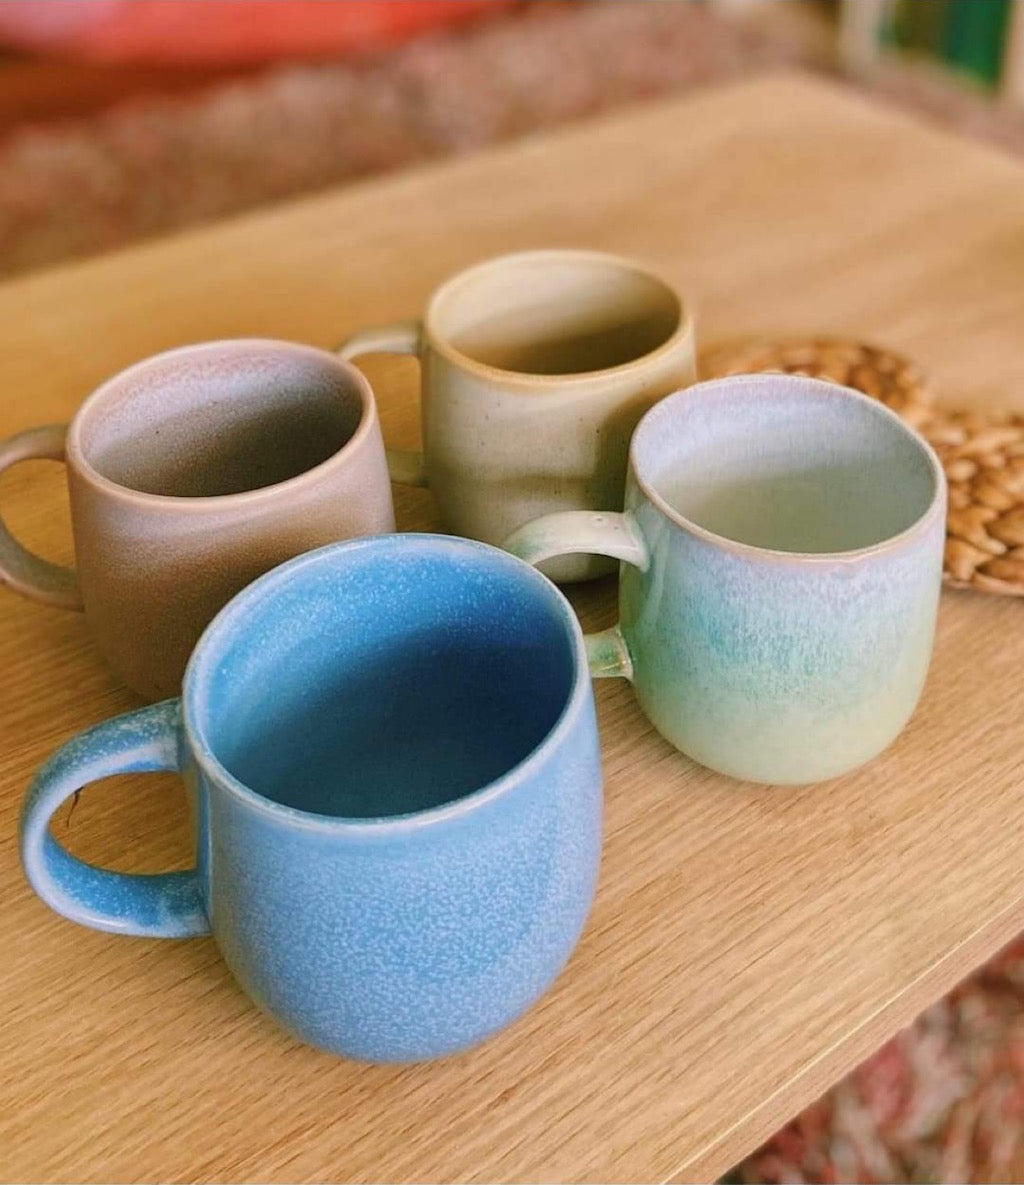 S&P- NAOKO Mug Shale 380ml| Bliss Gifts & Homewares | Unit 8, 259 Princes Hwy Ulladulla | South Coast NSW | Online Retail Gift & Homeware Shopping | 0427795959, 44541523